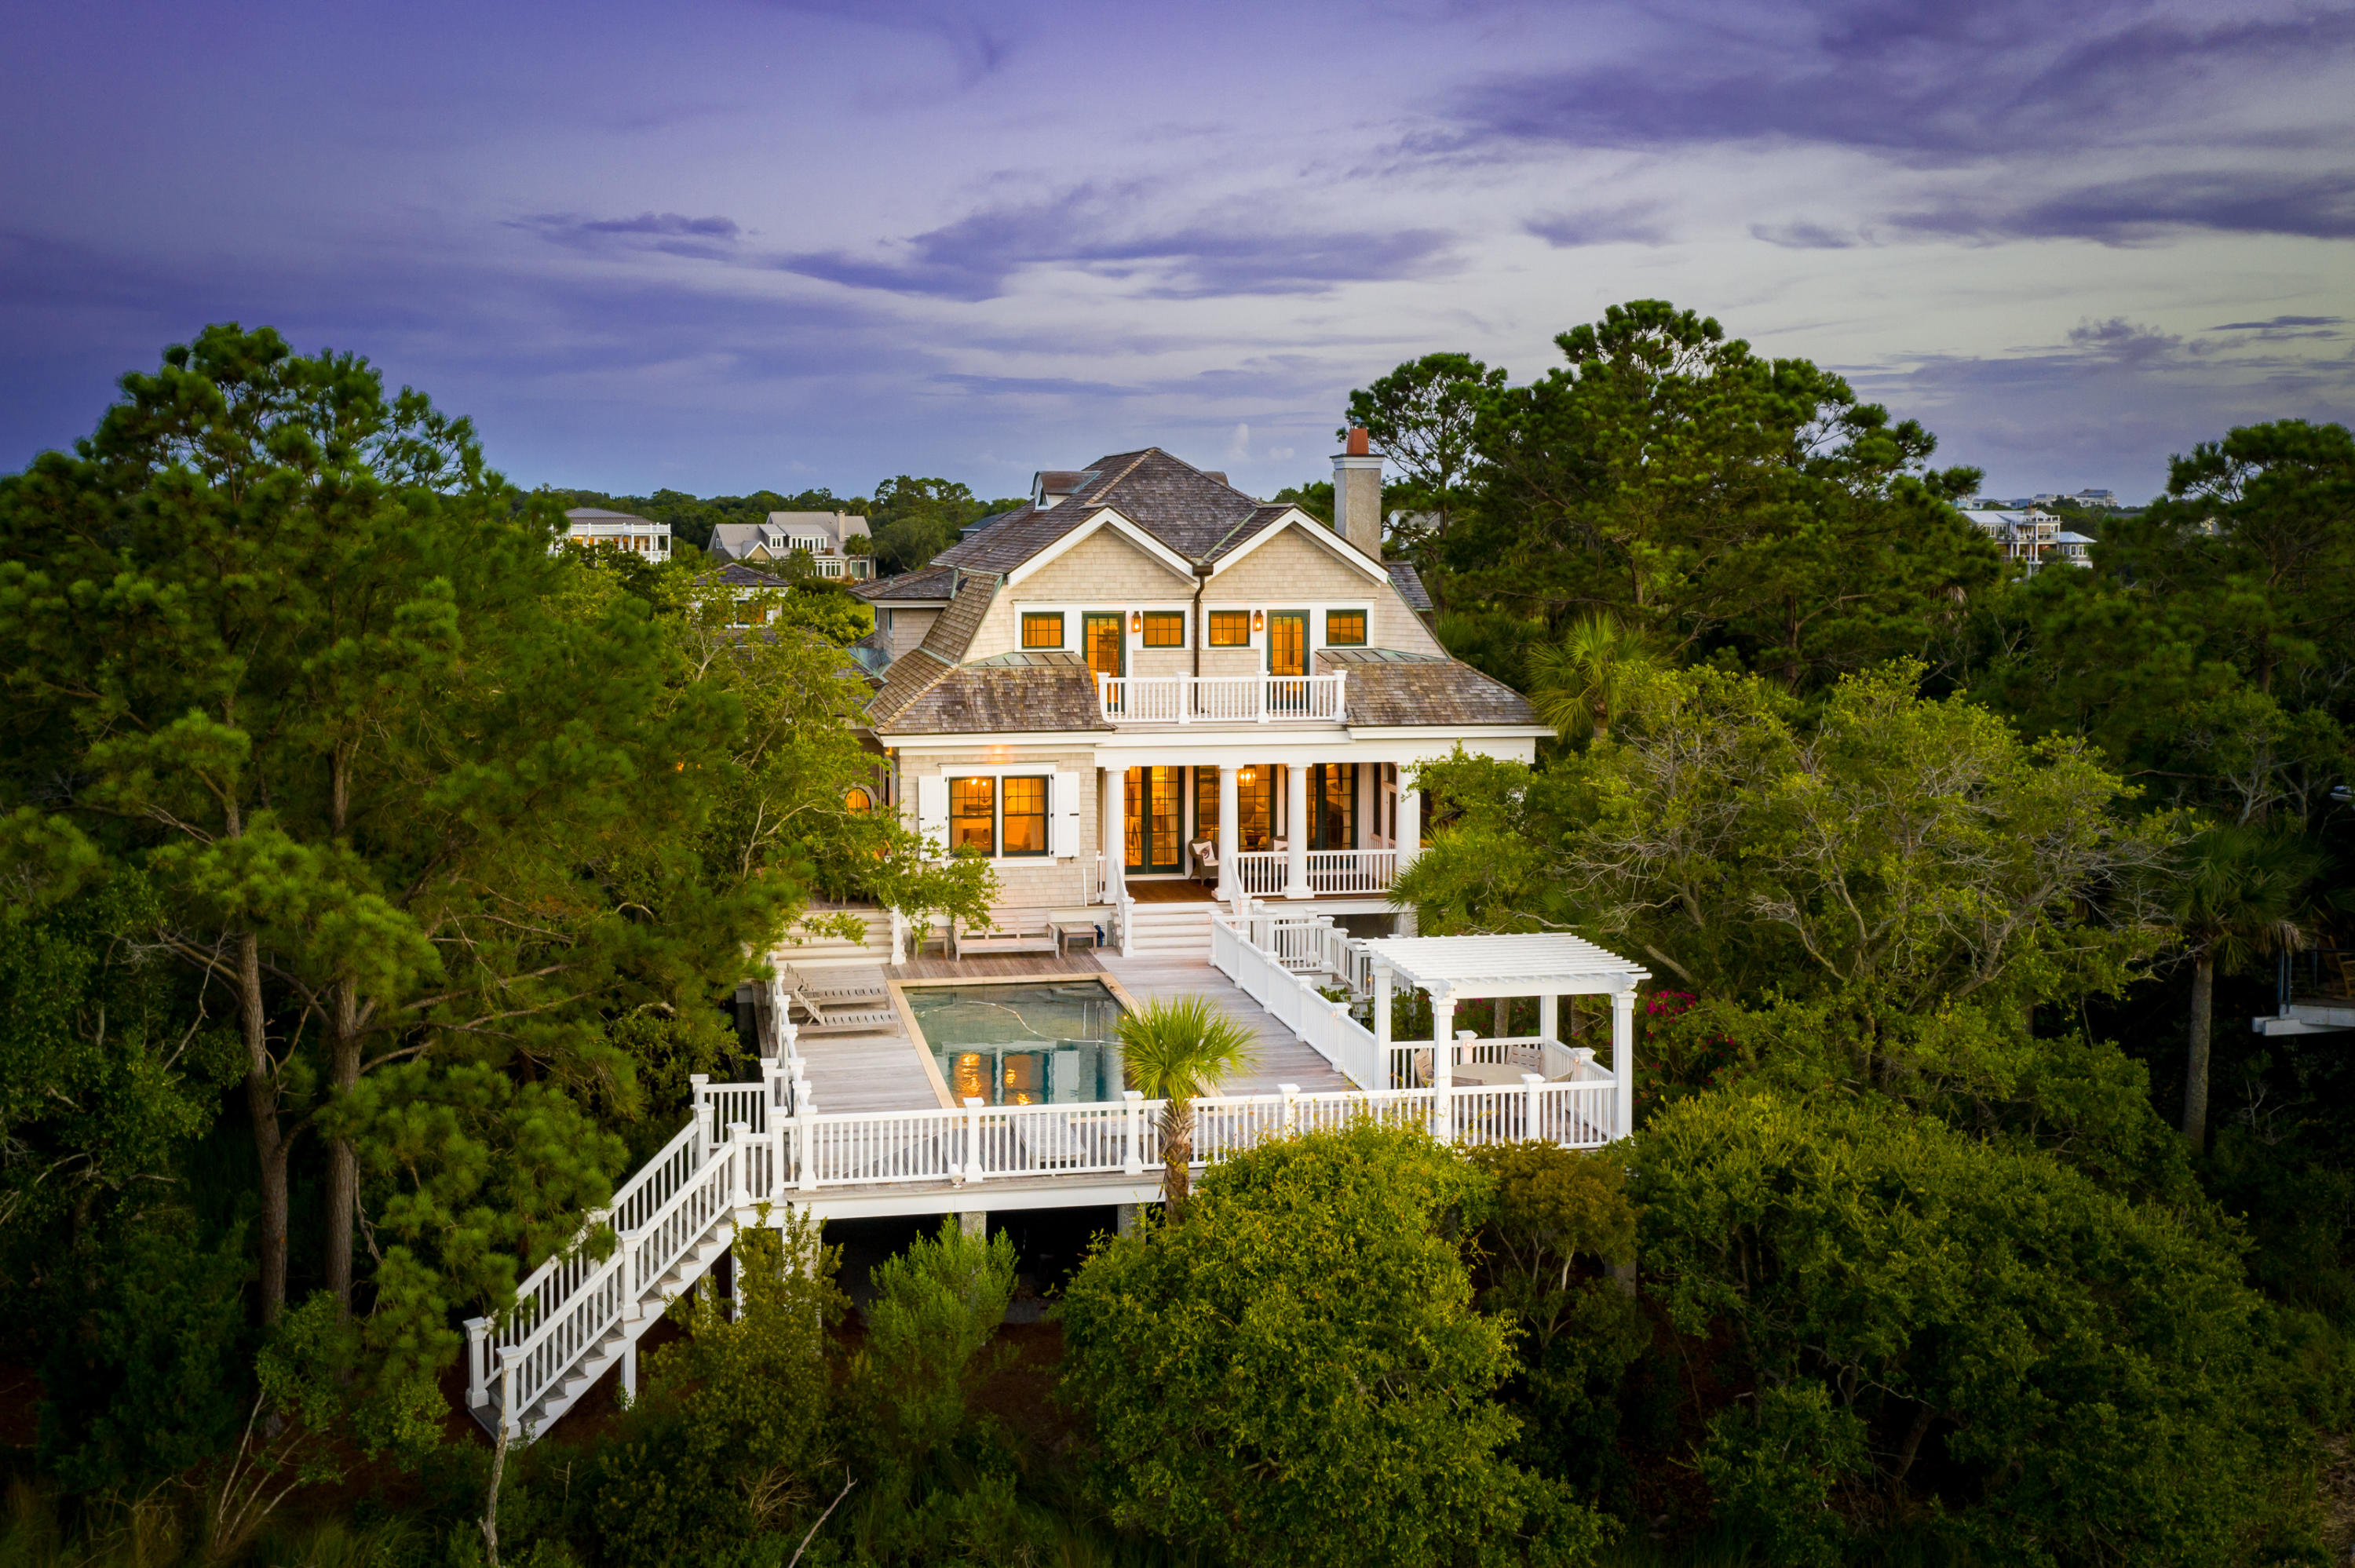 Masterfully designed by Christopher Rose, and built to the highest standard by Philip Smith, this luxury Lowcountry retreat offers a level of privacy and serenity rarely found on Isle of Palms. Nestled among the Palmettos, this Cape Cod style home welcomes all with beautiful shake exterior and off-centered front doorway. The property spans 2-acres, boasting its own tidal lagoon, elevated back deck, saltwater pool and truly gorgeous long-marsh views towards the Intracoastal Waterway. As showcased in American Dream Homes Magazine, the residence is truly one to behold, with no detail neglected through its design and construction - a true luxury coastal estate. As you enter the home, two separate studies bookend the powder room and oversized foyer. The entry space features a prominent  turning staircase and first glimpse of detailed wainscoting and crown molding as seen throughout. Soft natural light floods the space through the surrounding Carolina tree line and carefully designed eyebrow-style skylights from the upper floor. The light is met by accented white walls and cherry hardwood floors which connect most of the interior. As you are invited in through the foyer, you are met with an amazing great room. Here, French doors line the exterior, allowing owners and guests to view the beautiful, vast saltwater marsh from the comfort of the home. To the left, the coiffeur ceiling and stone fireplace promote a warm setting perfect for gathering with family and friends. To the right, dining and kitchen spaces flow together perfectly in an open setting. Ro Sham Beaux and Circa lighting fixtures hang overhead and compliment the marble counters and stainless-steel appliances. The gas range, peninsula bar and large kitchen island make this space perfect for cooking, and entertaining is made easy through built in smart-home and Sonos surround-sound systems. A wet bar is placed just outside the great room, with wine cooler and storage. The main floor guest bedroom sits to the lef